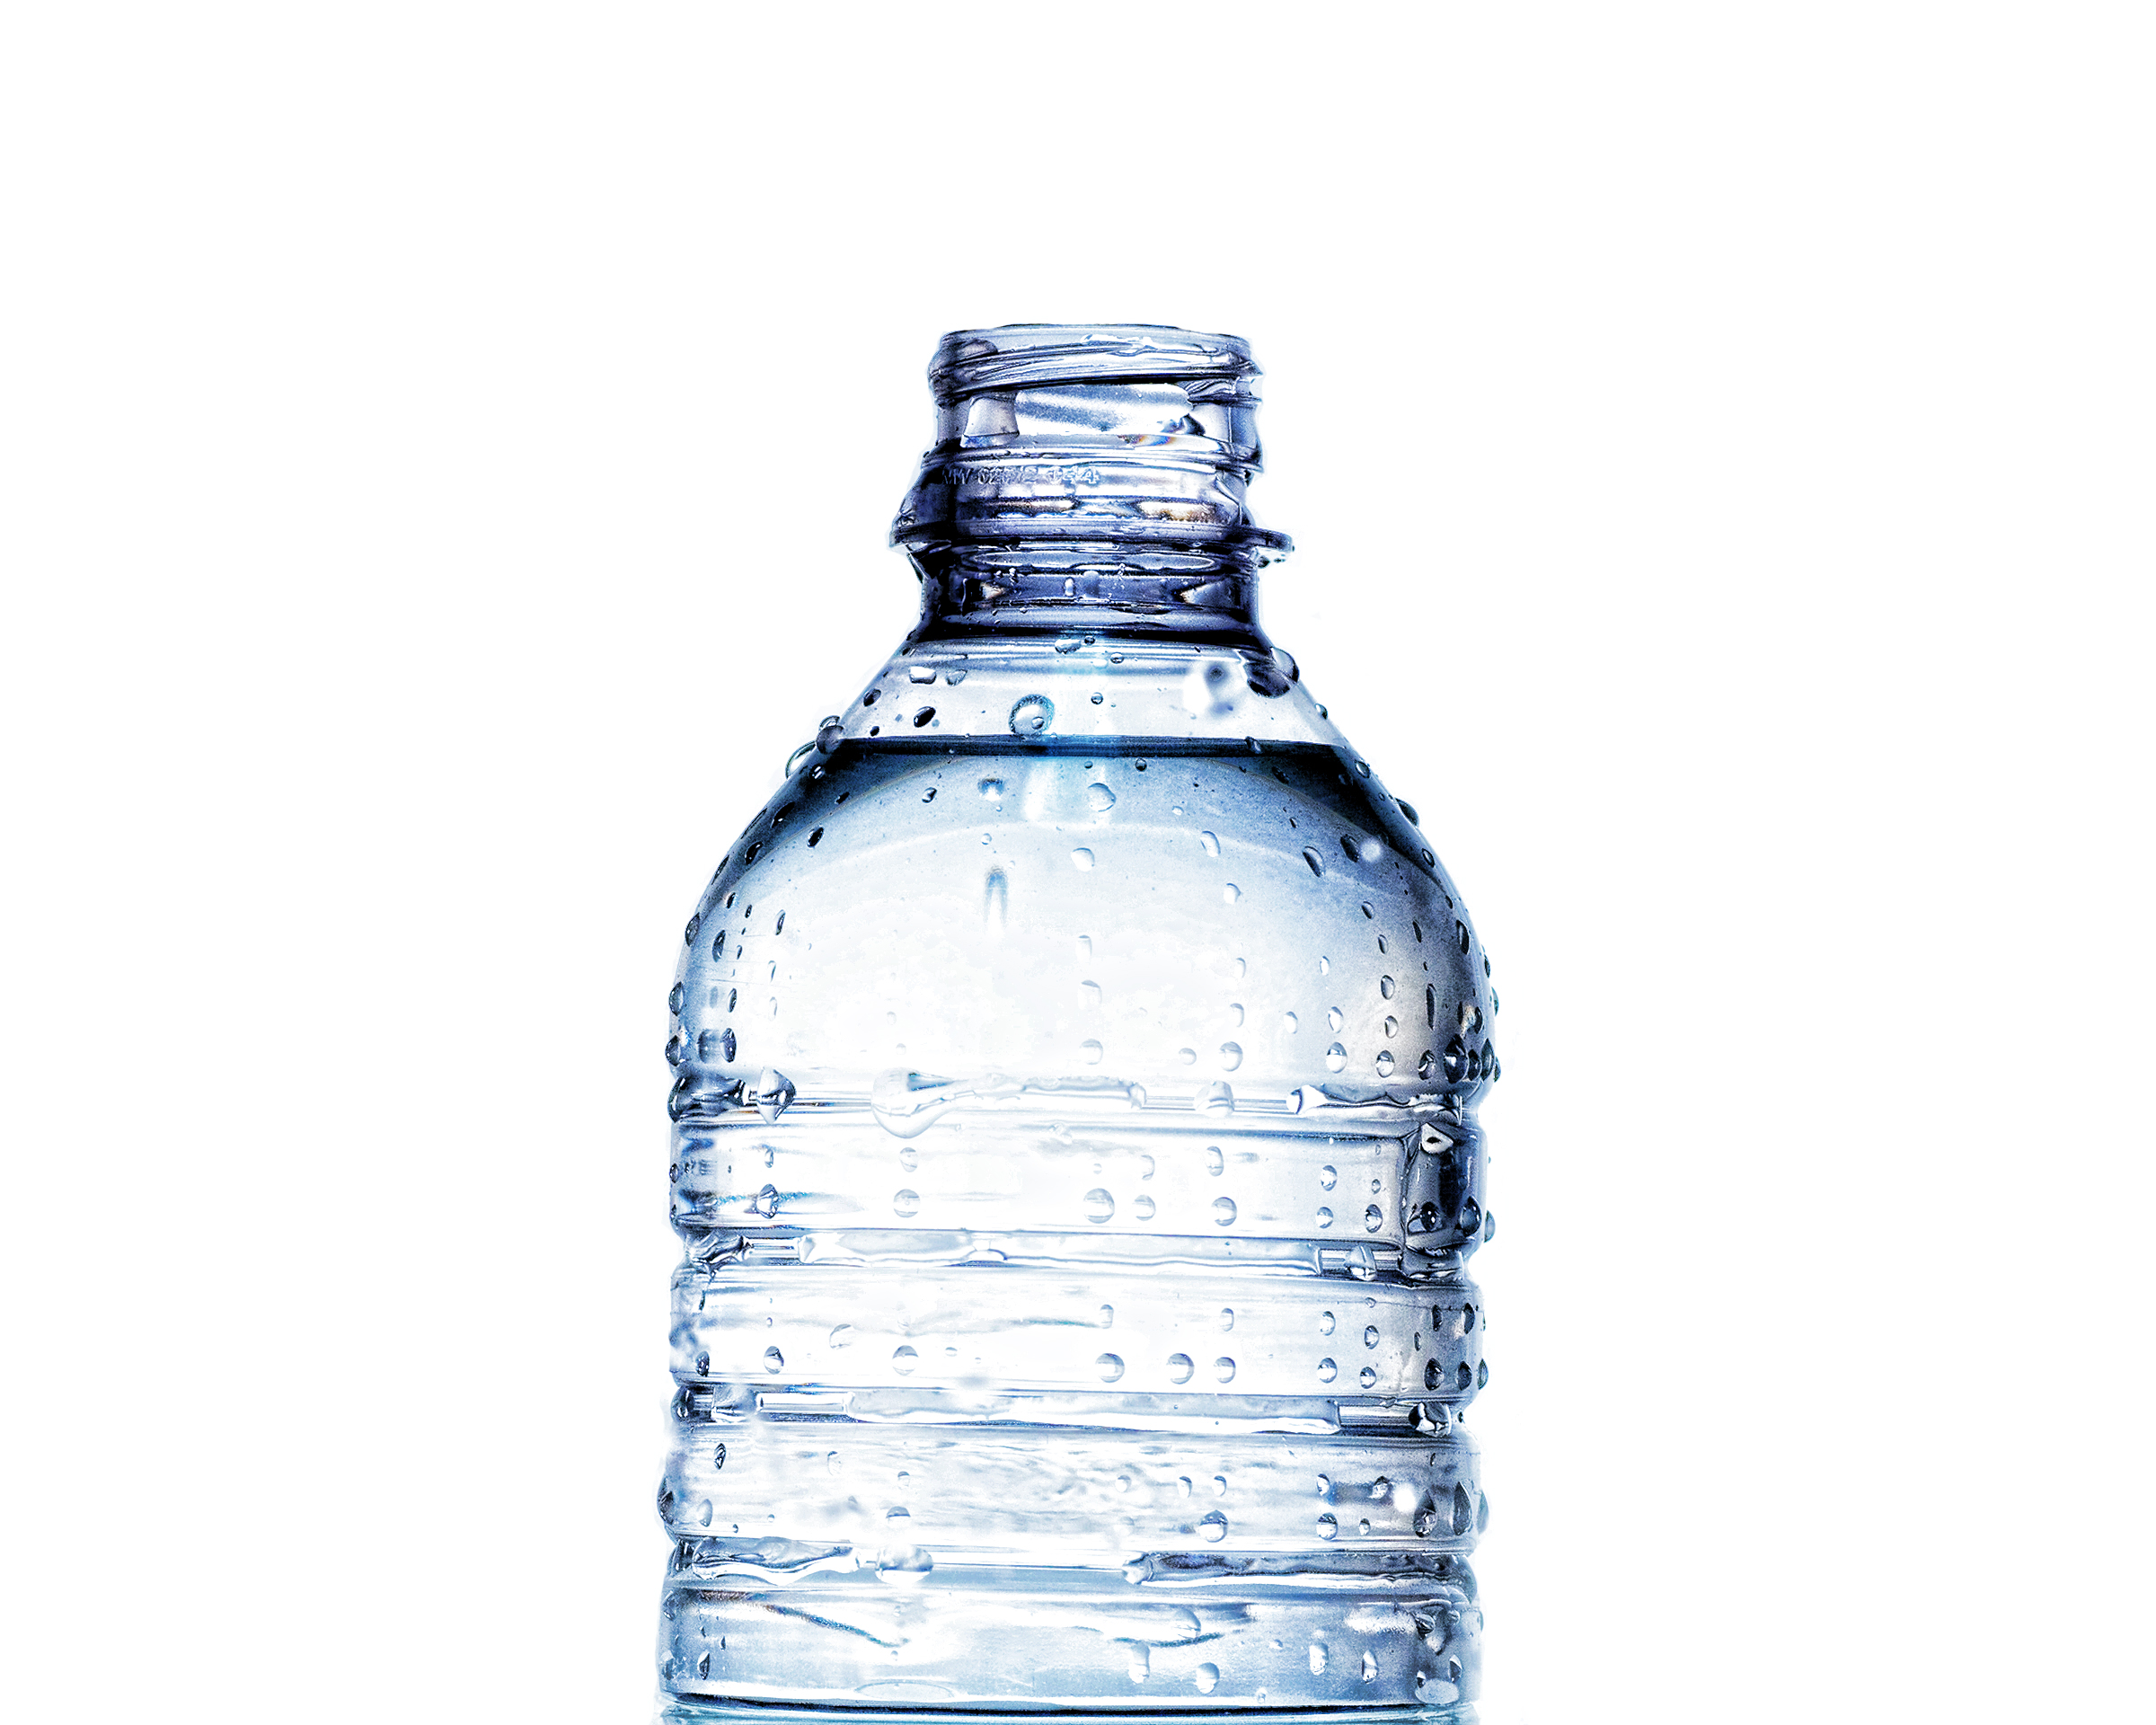 water bottle computer wallpaper 63552